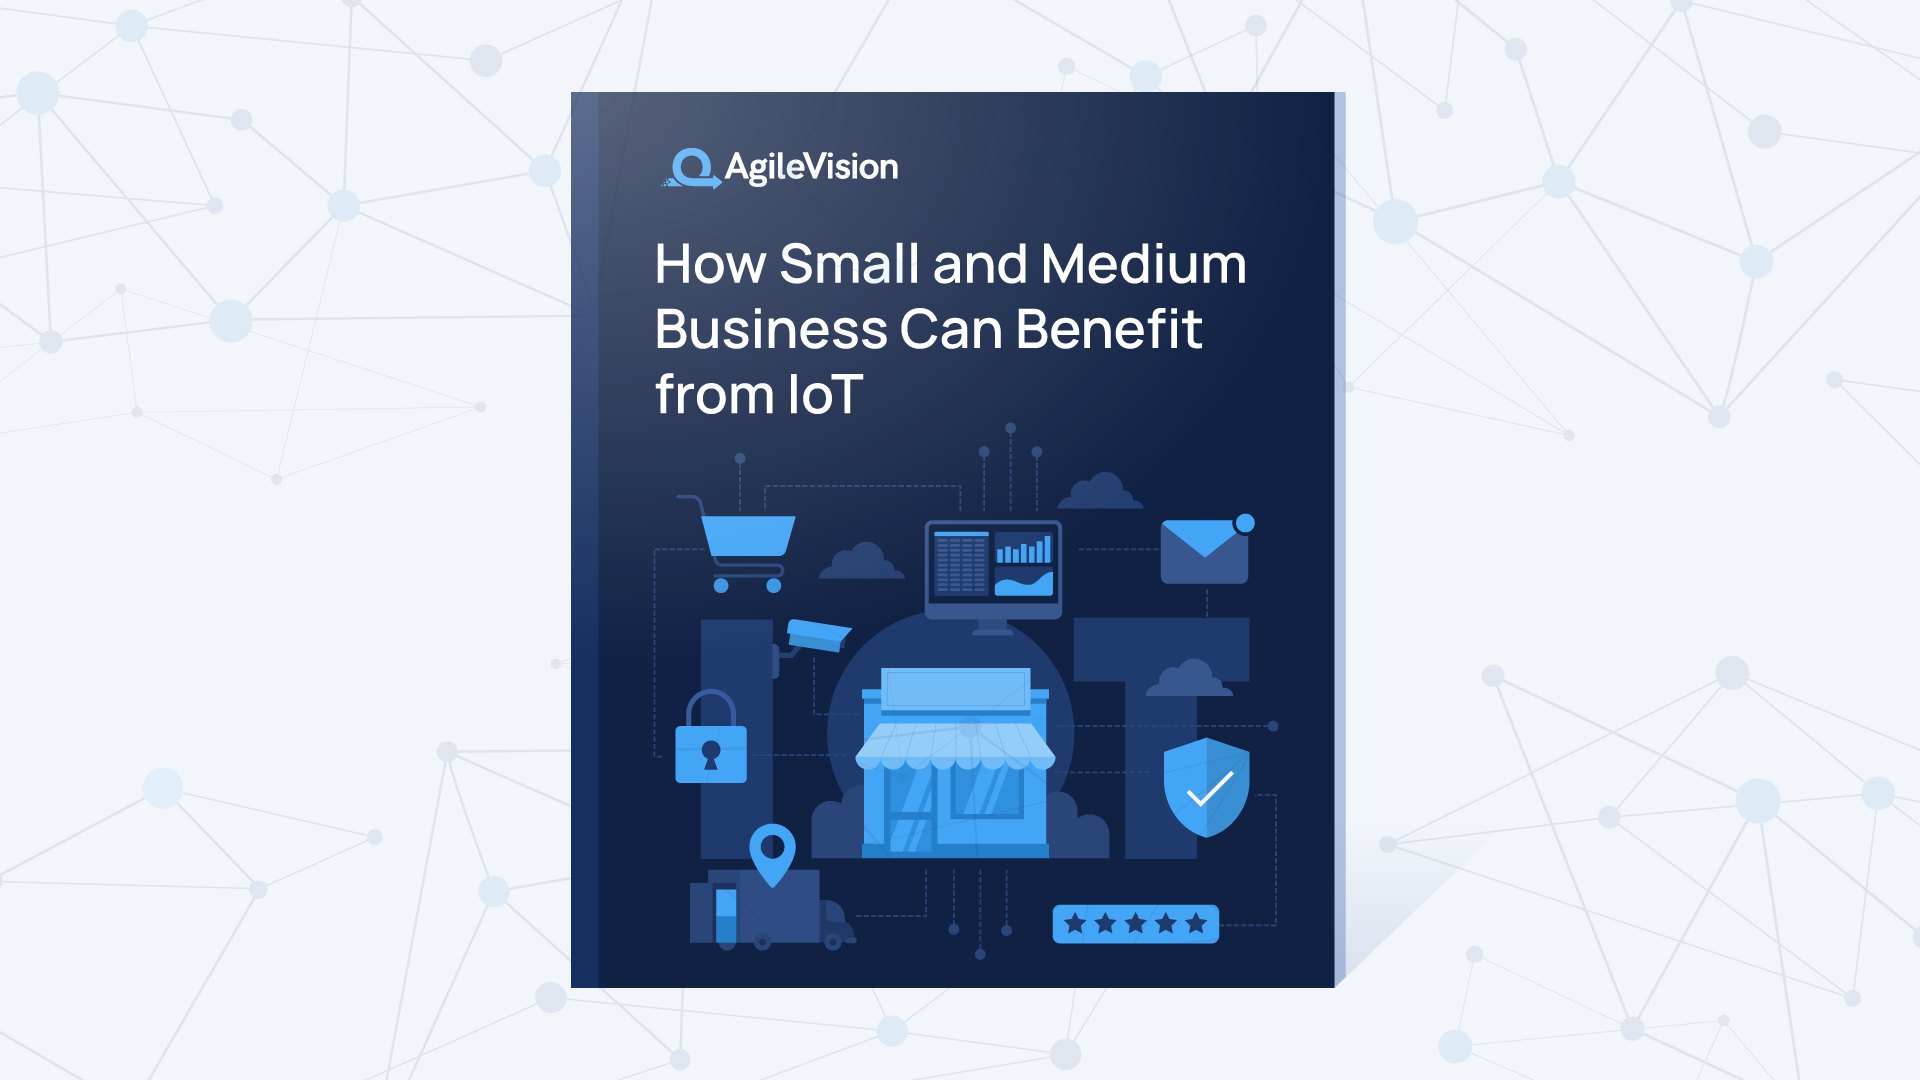 AgileVision has released a new eBook about the benefits of IoT for small and medium businesses